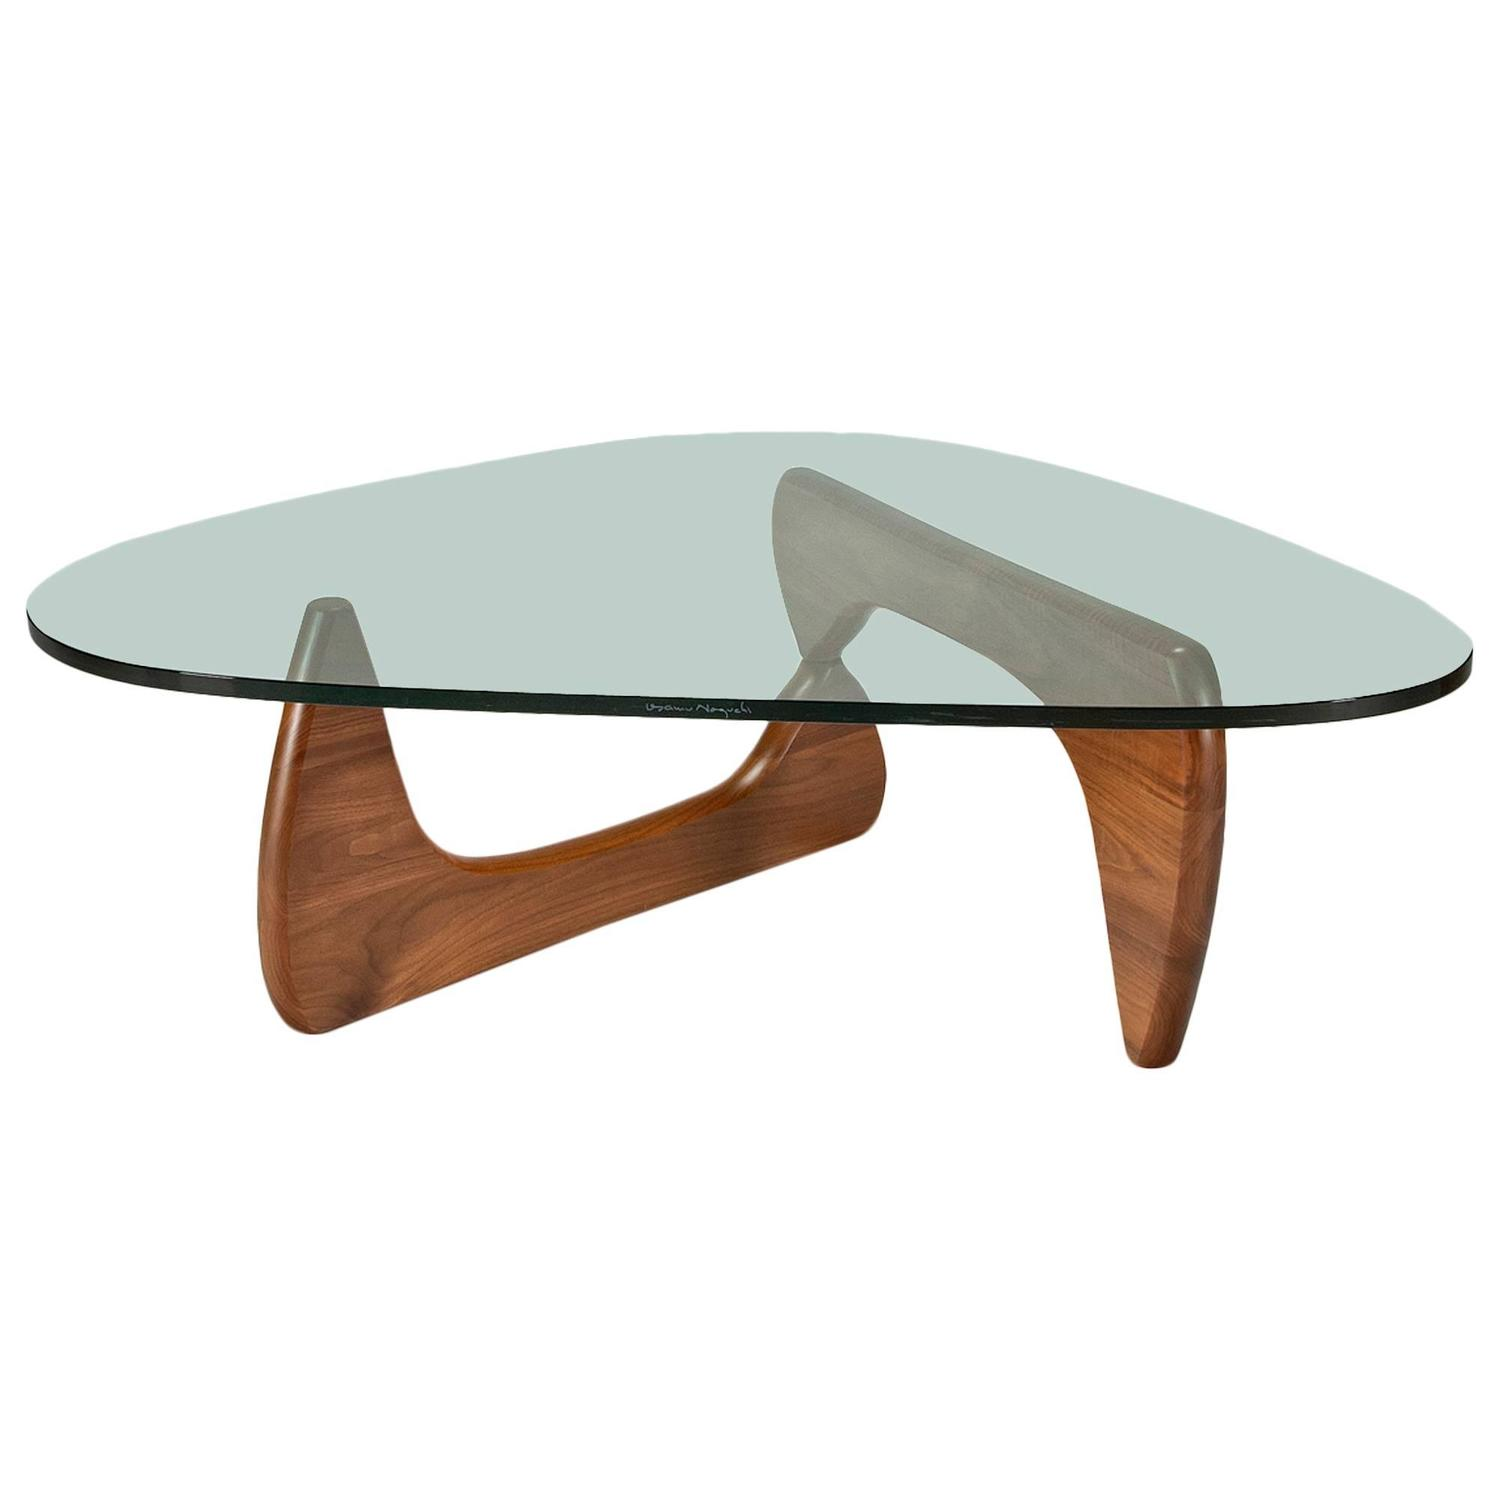 Noguchi table by isamu noguchi for herman miller at 1stdibs for Noguchi coffee table